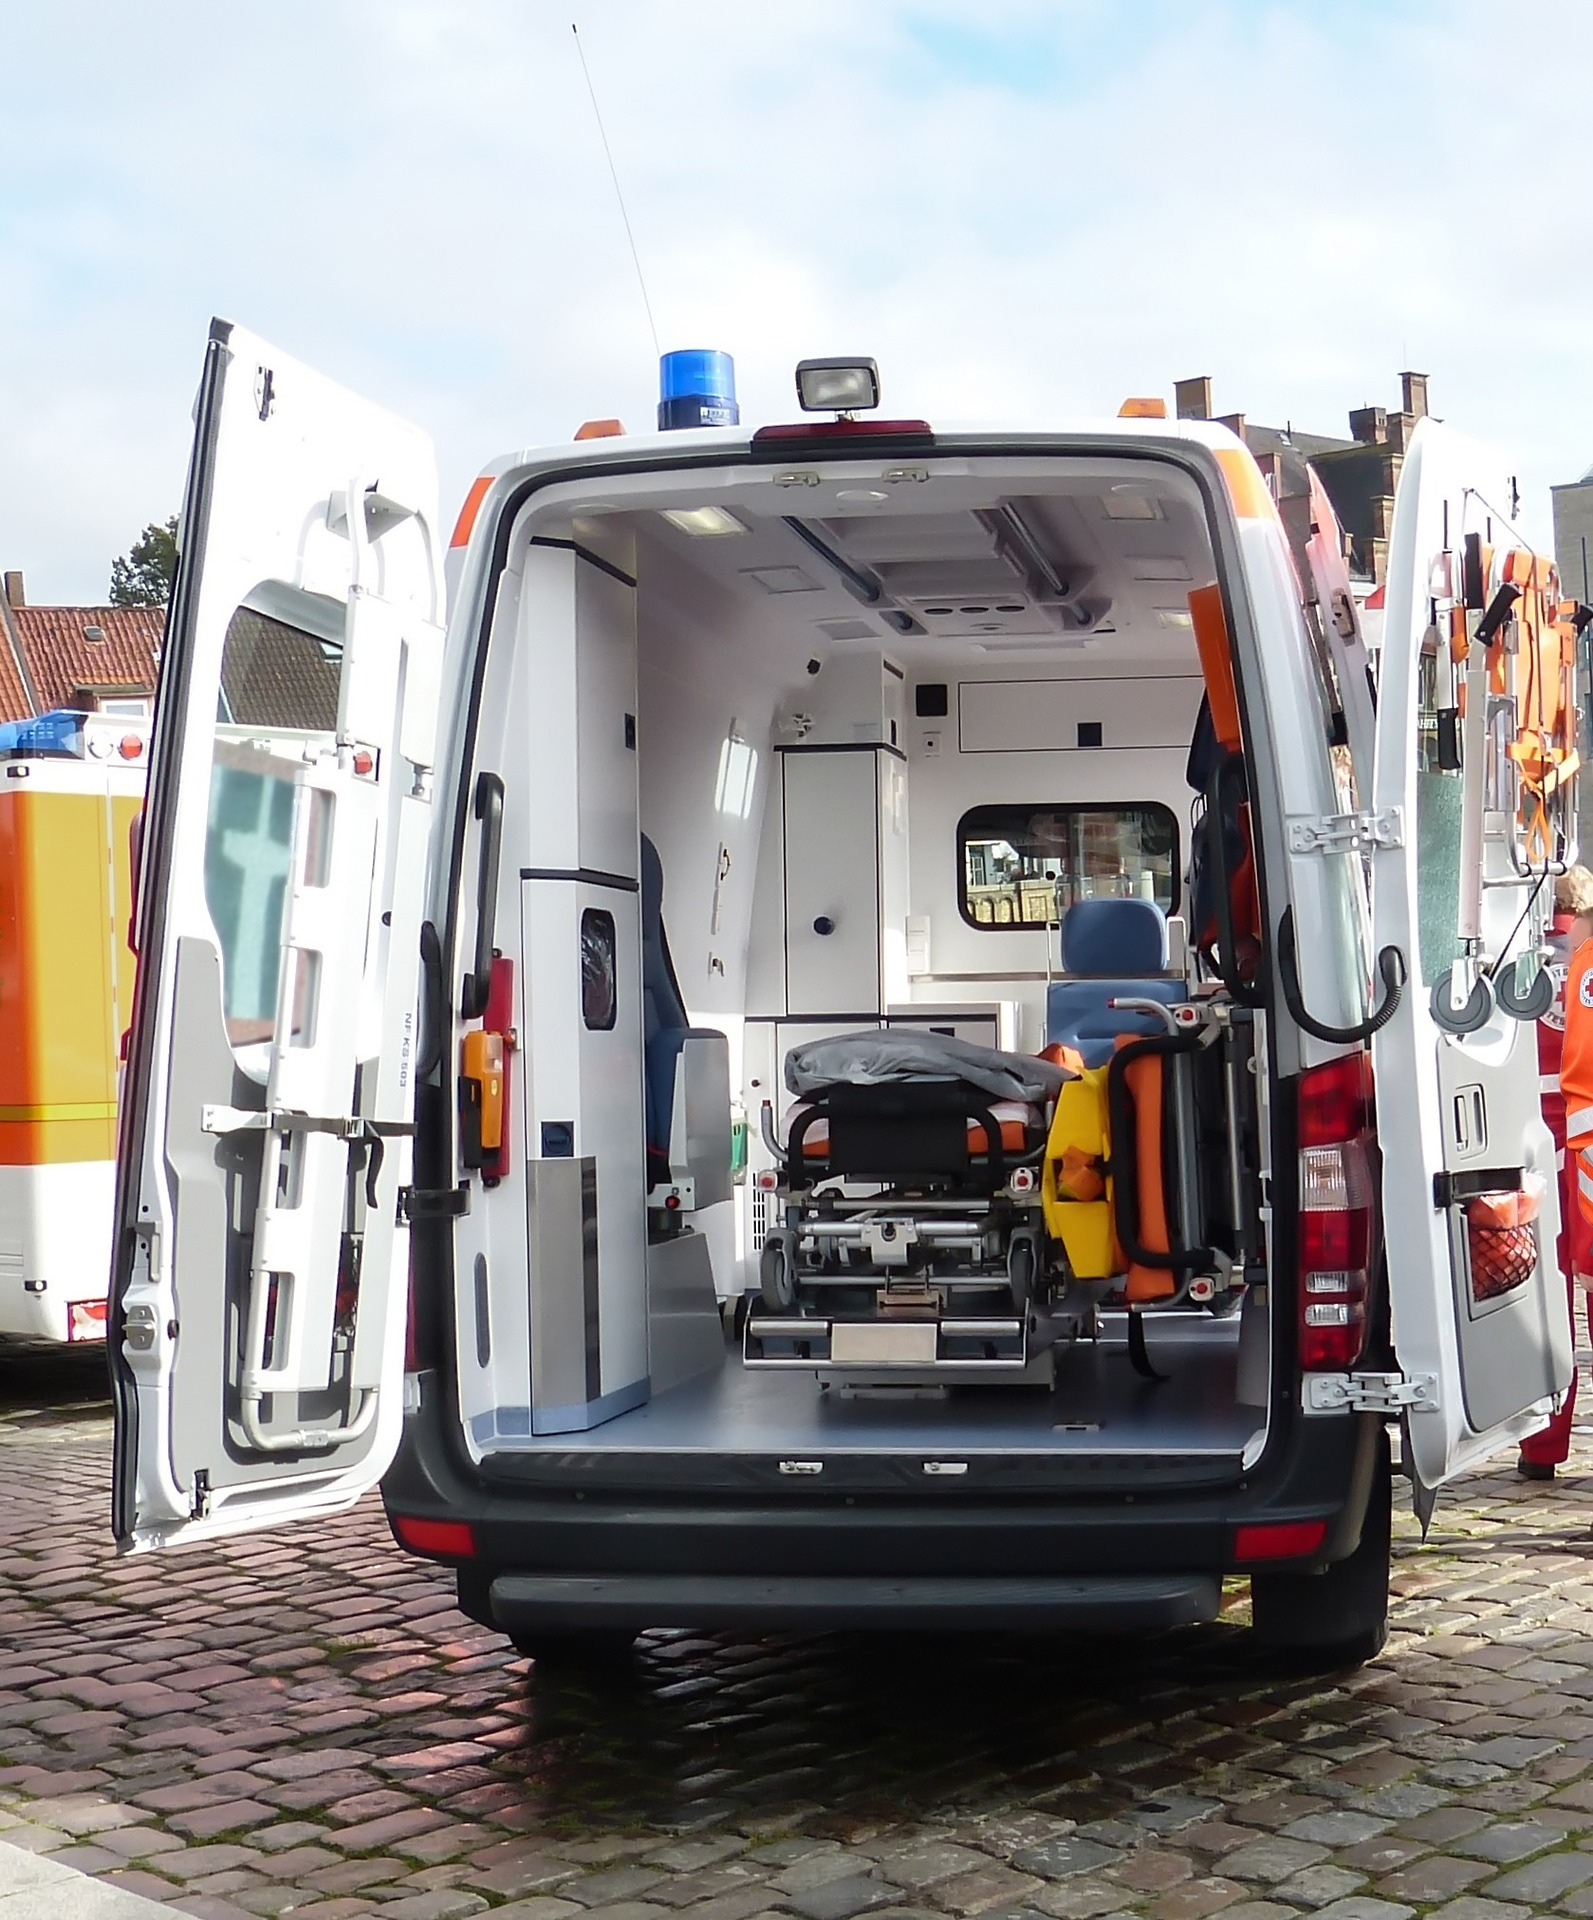 When Should You Take an Ambulance to the Hospital After a Car